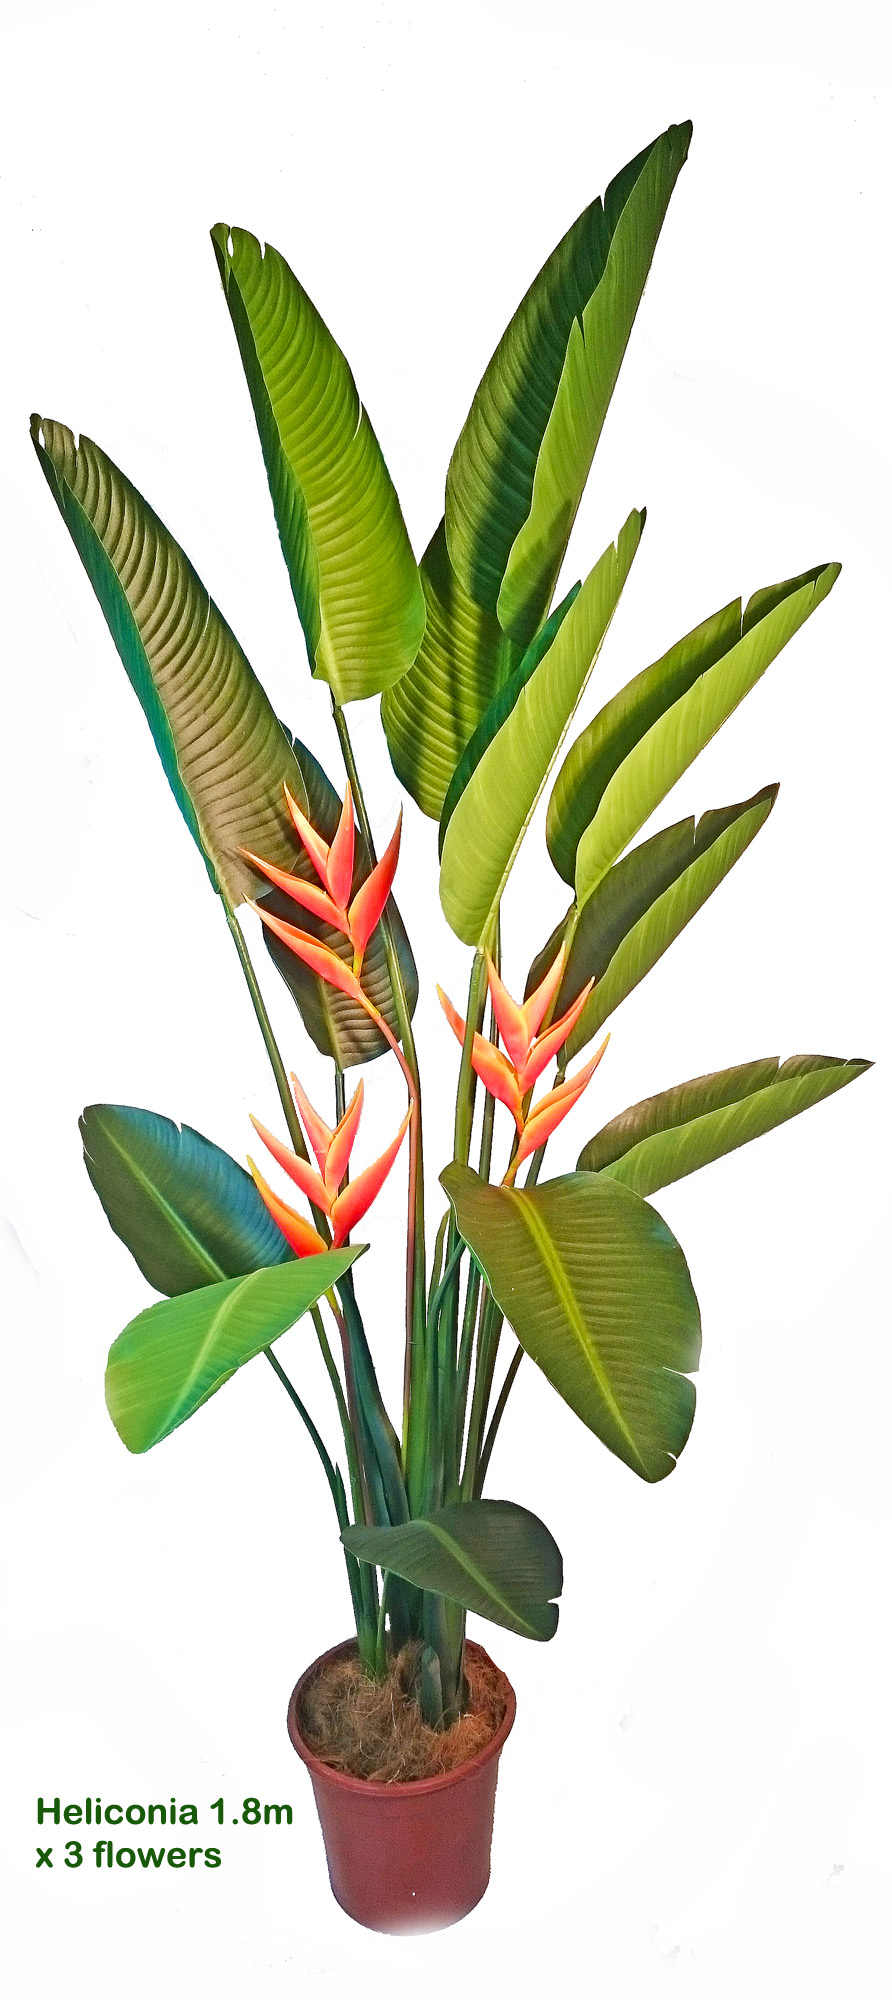 Articial Plants - Heliconia Palms- Flowering 1.5m with 2 flowers